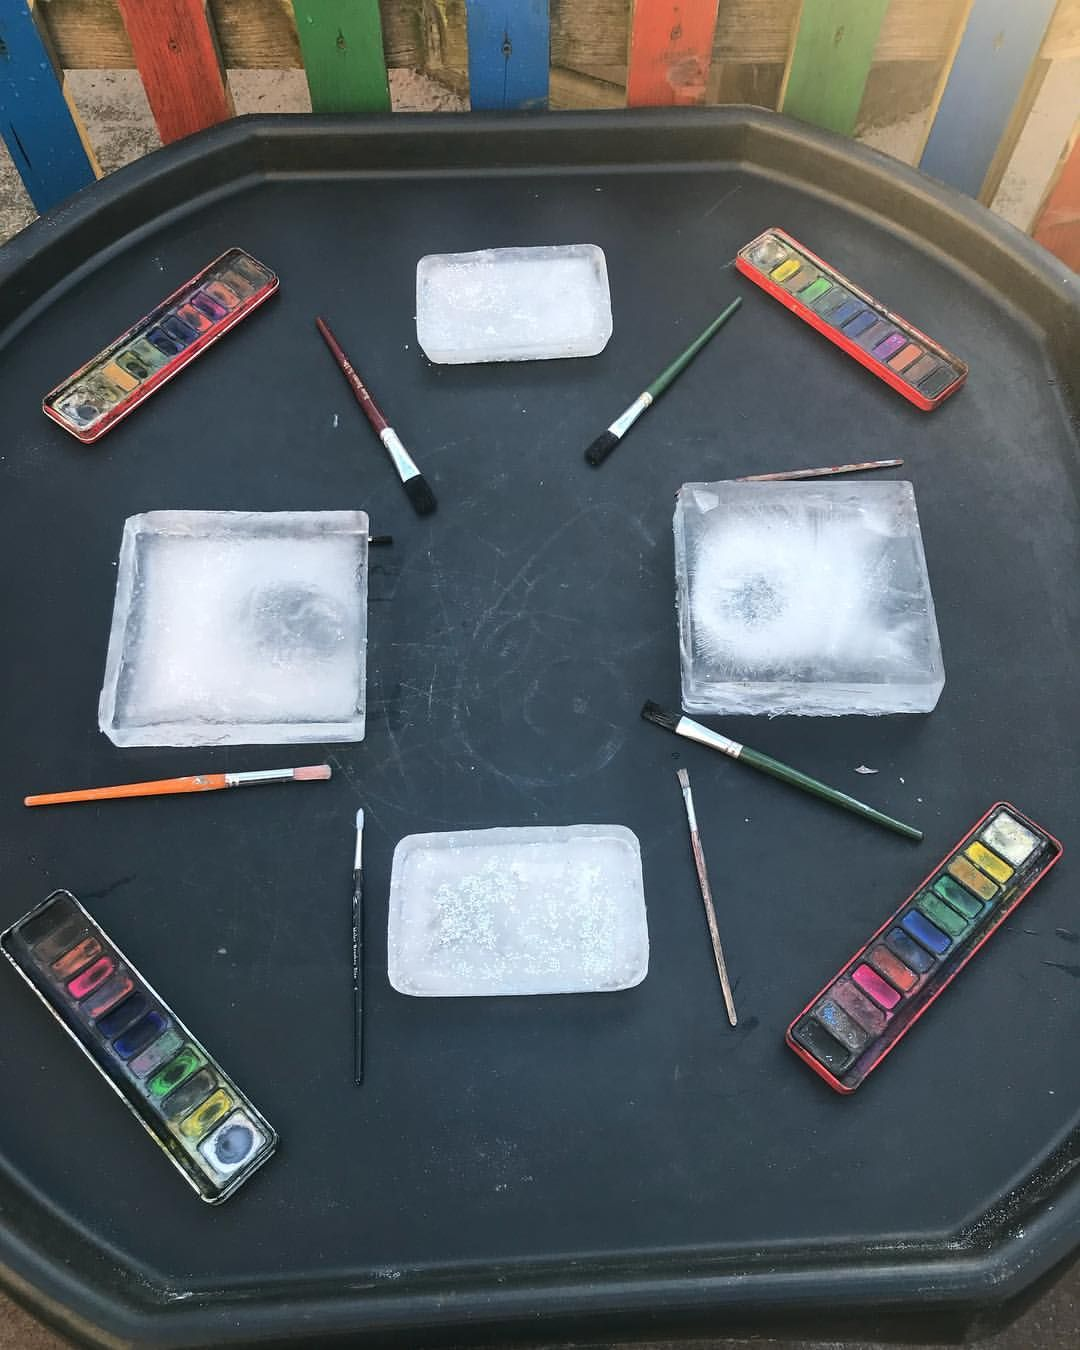 "Foundation Team - Ella & Nicky on Instagram: ""Today's tuff tray - ice painting ️� #tufftrayideas #eyfsideas #eyfsteacher #eyfs #eyfsclassroom"""